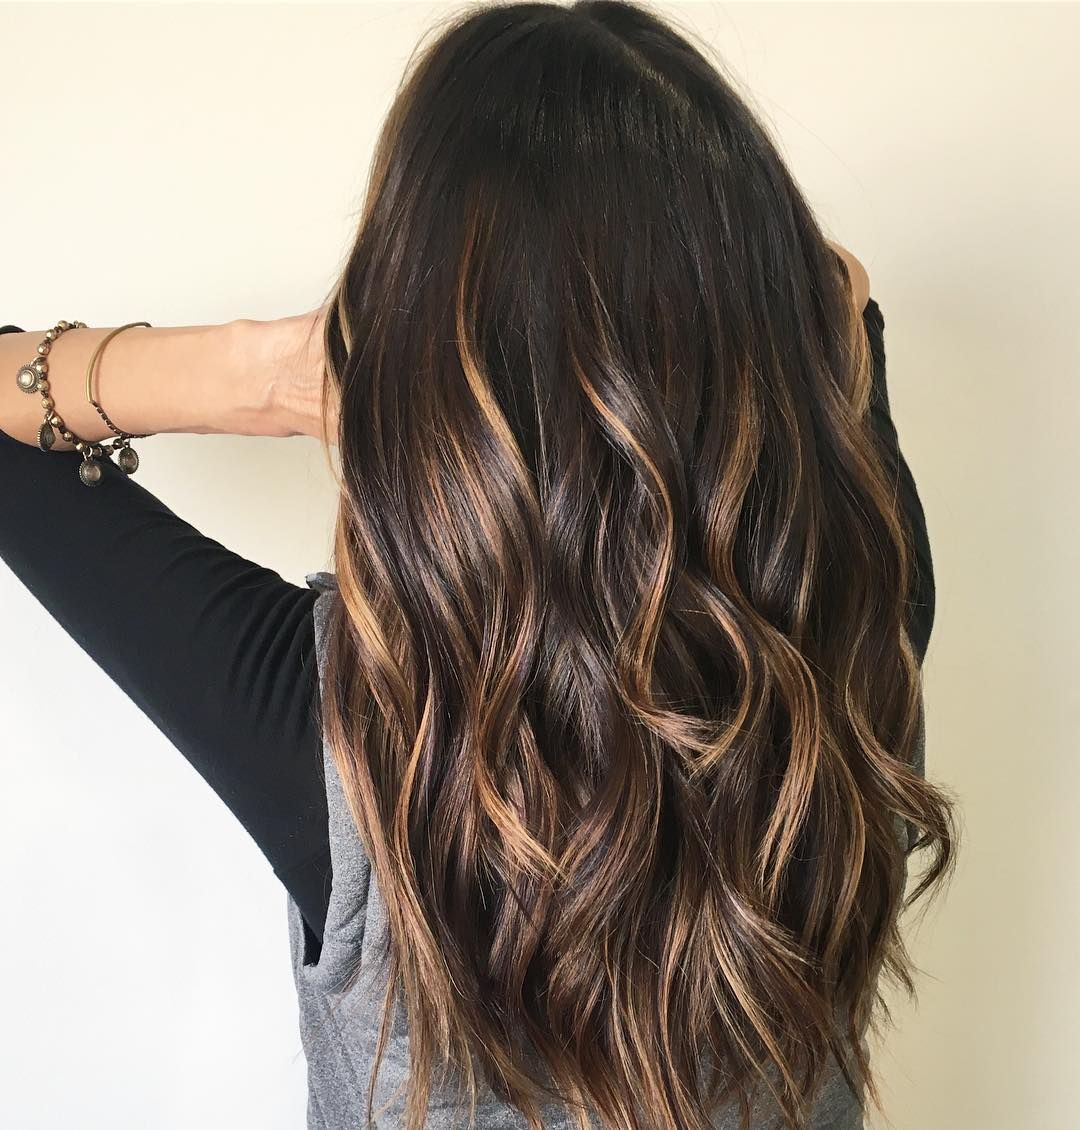 21 balayage dark brown hair color ideas for changing up your ...